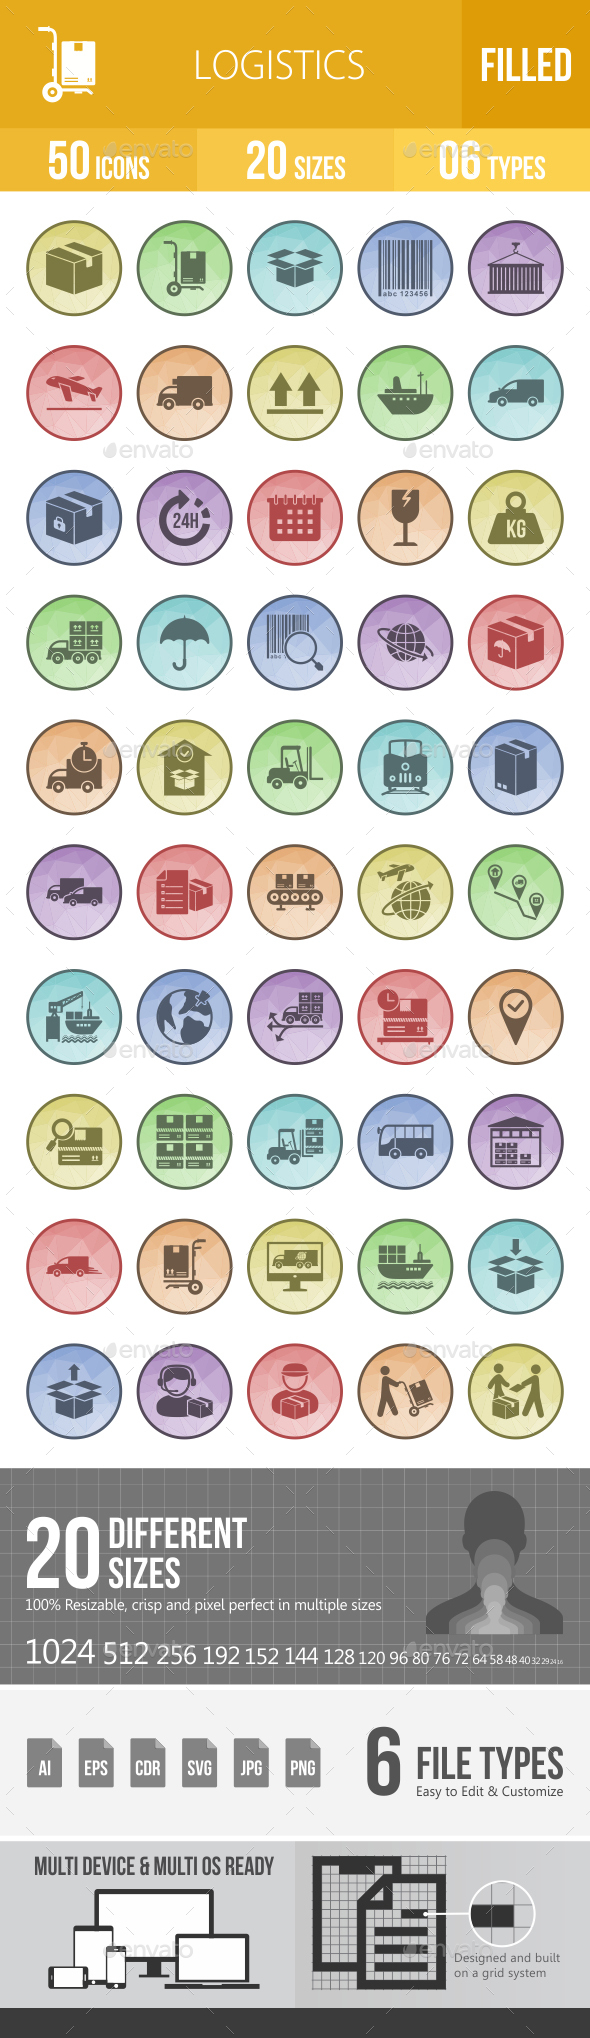 50 Logistics Filled Low Poly Icons - Icons